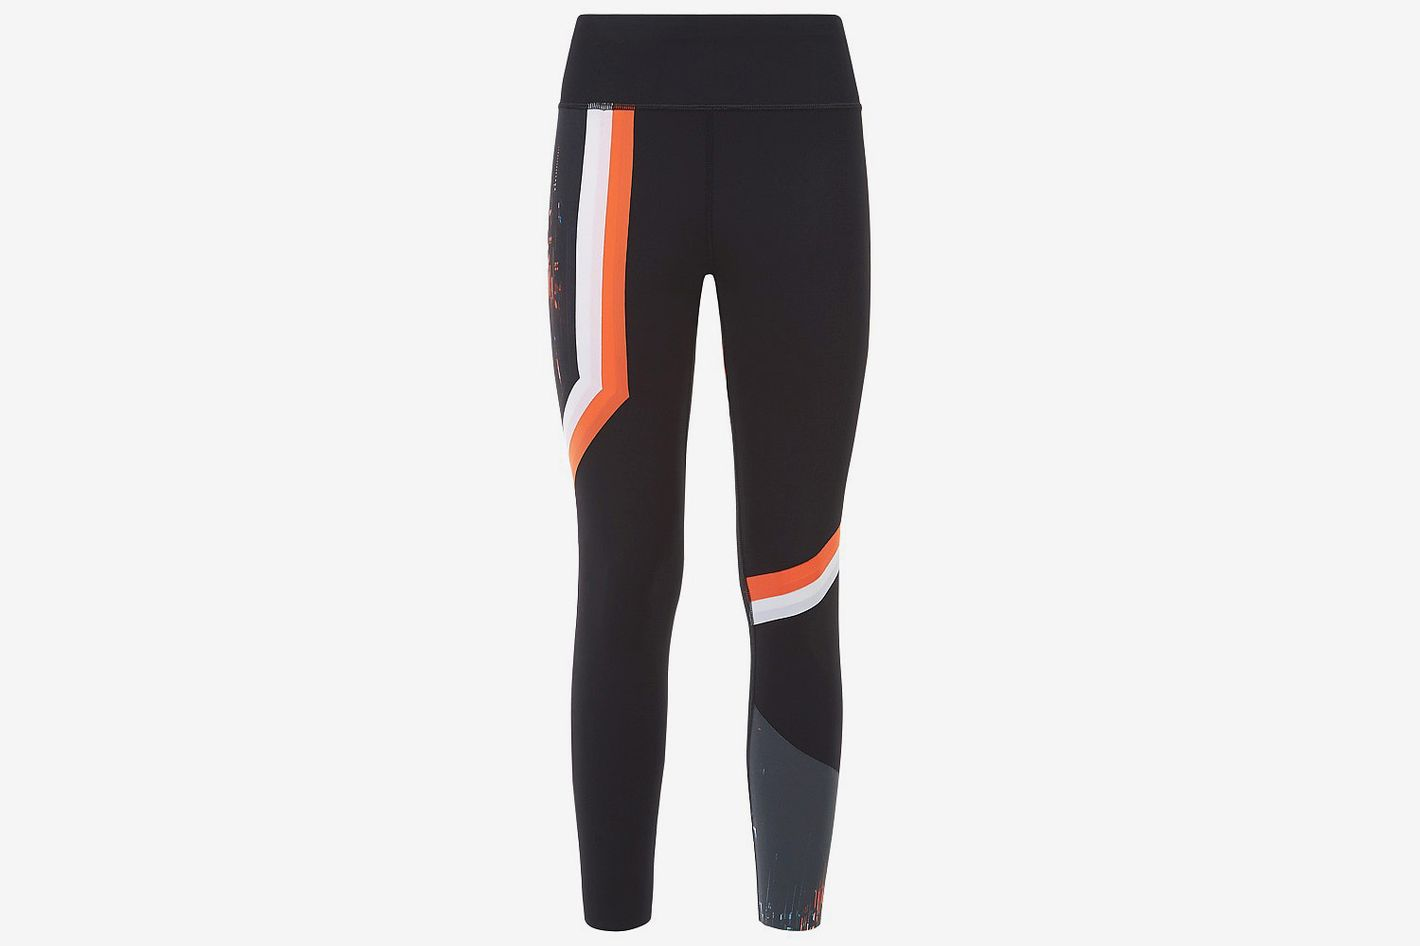 9b2106fe25da9 10 High-Waisted Leggings That are Perfect for Your Workout